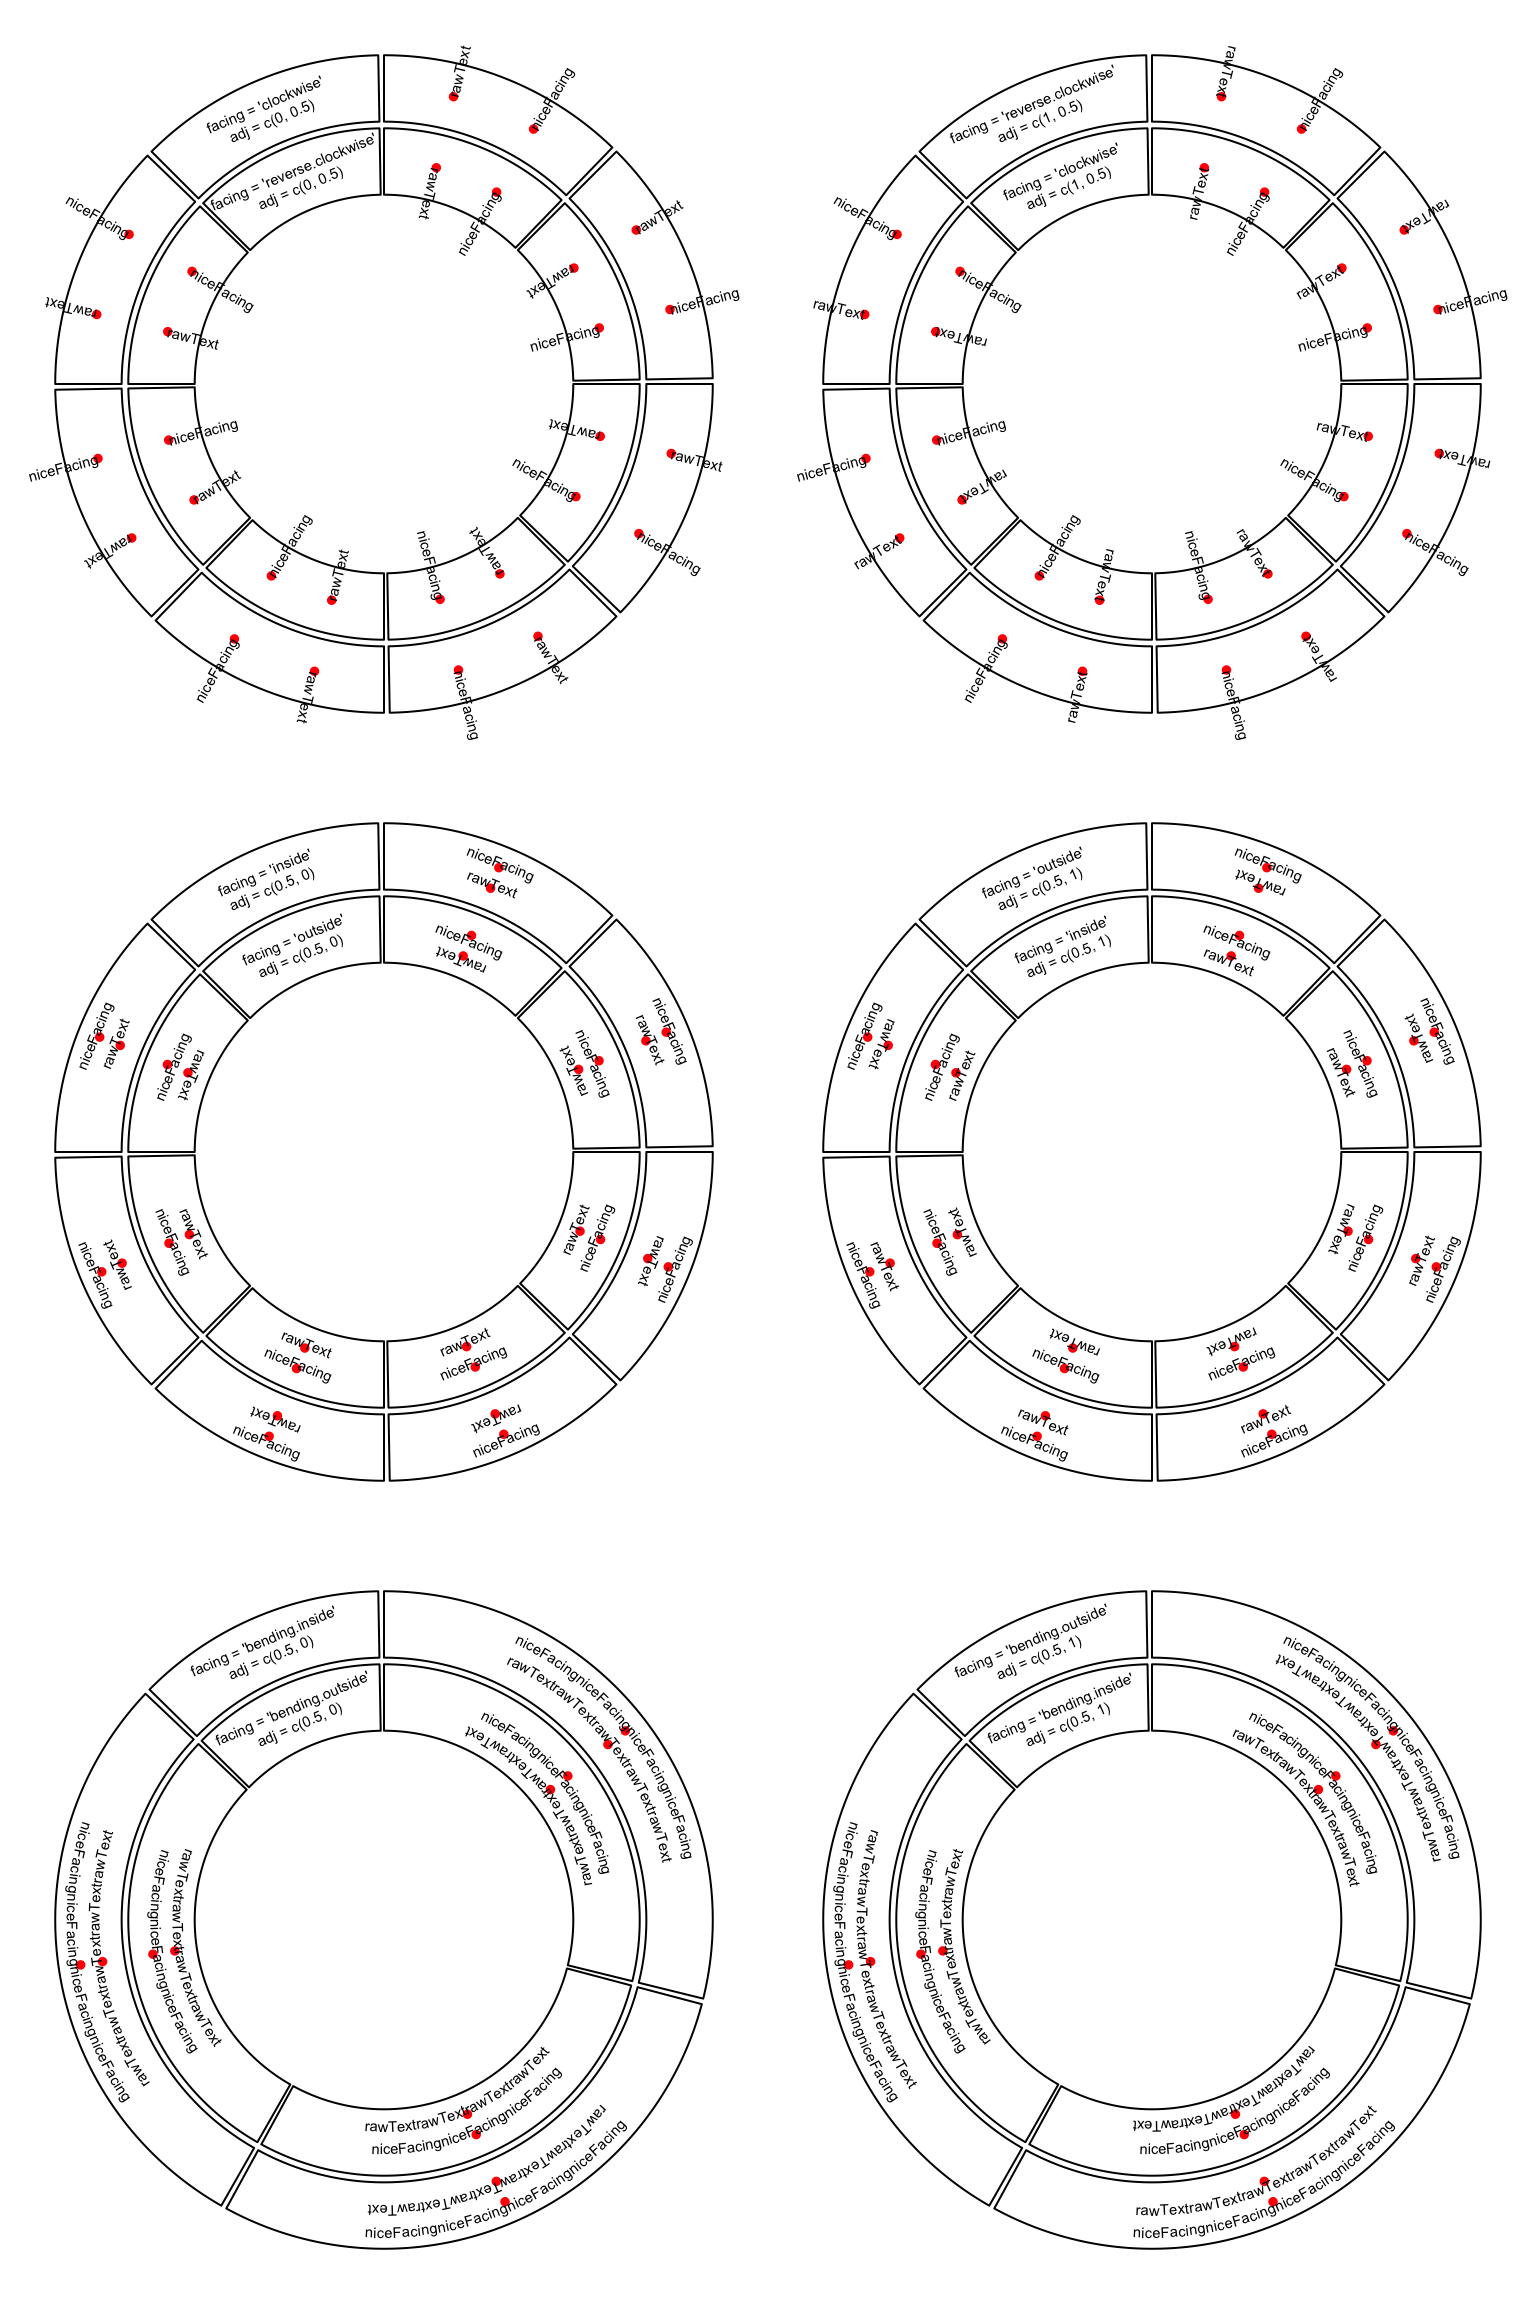 Chapter 3 Graphics Circular Visualization In R